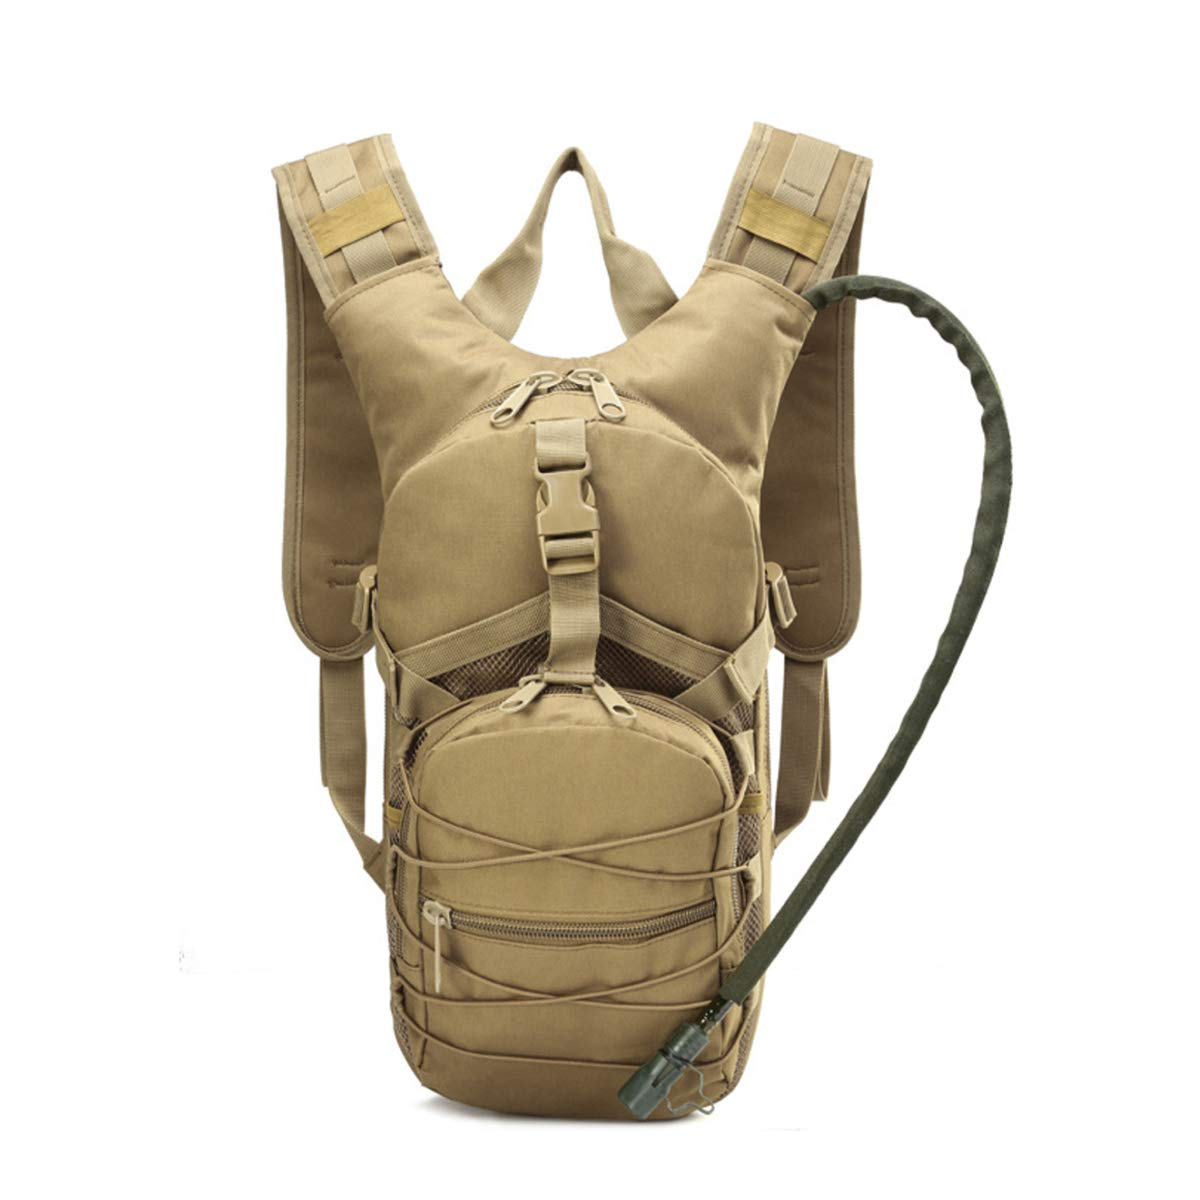 BraveHawkOutdoors Tactical Hydration Backpack Resistant